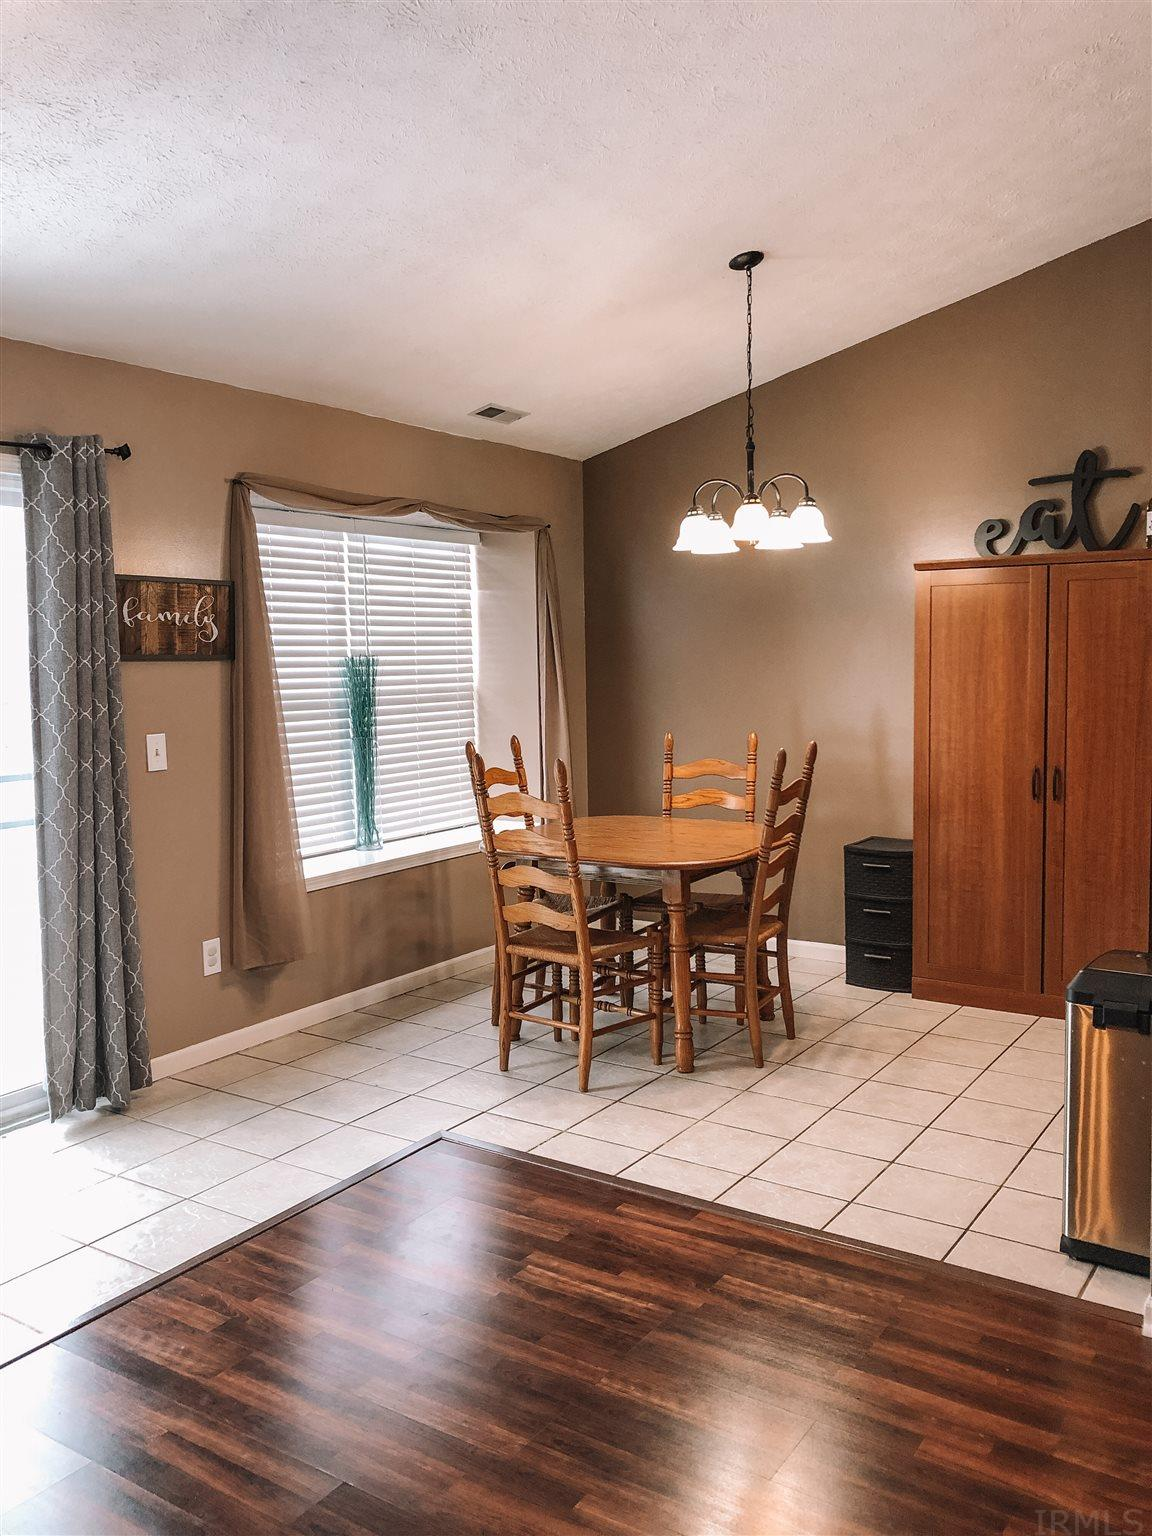 Once you step inside this 3 bedroom 2 bath, one story home, you are greeted with a large living room and vaulted ceilings! Split floor plan offers 2 large bedrooms, and a master suit with vaulted ceiling and plant shelf. Fully applianced eat in galley style kitchen. Updates include: Roof and HVAC (2016), Carpet in bedrooms (2015), landscape (2018), Stove & Refrigerator (2018). All this situated on a corner lot with a privacy fenced in yard and large storage shed.